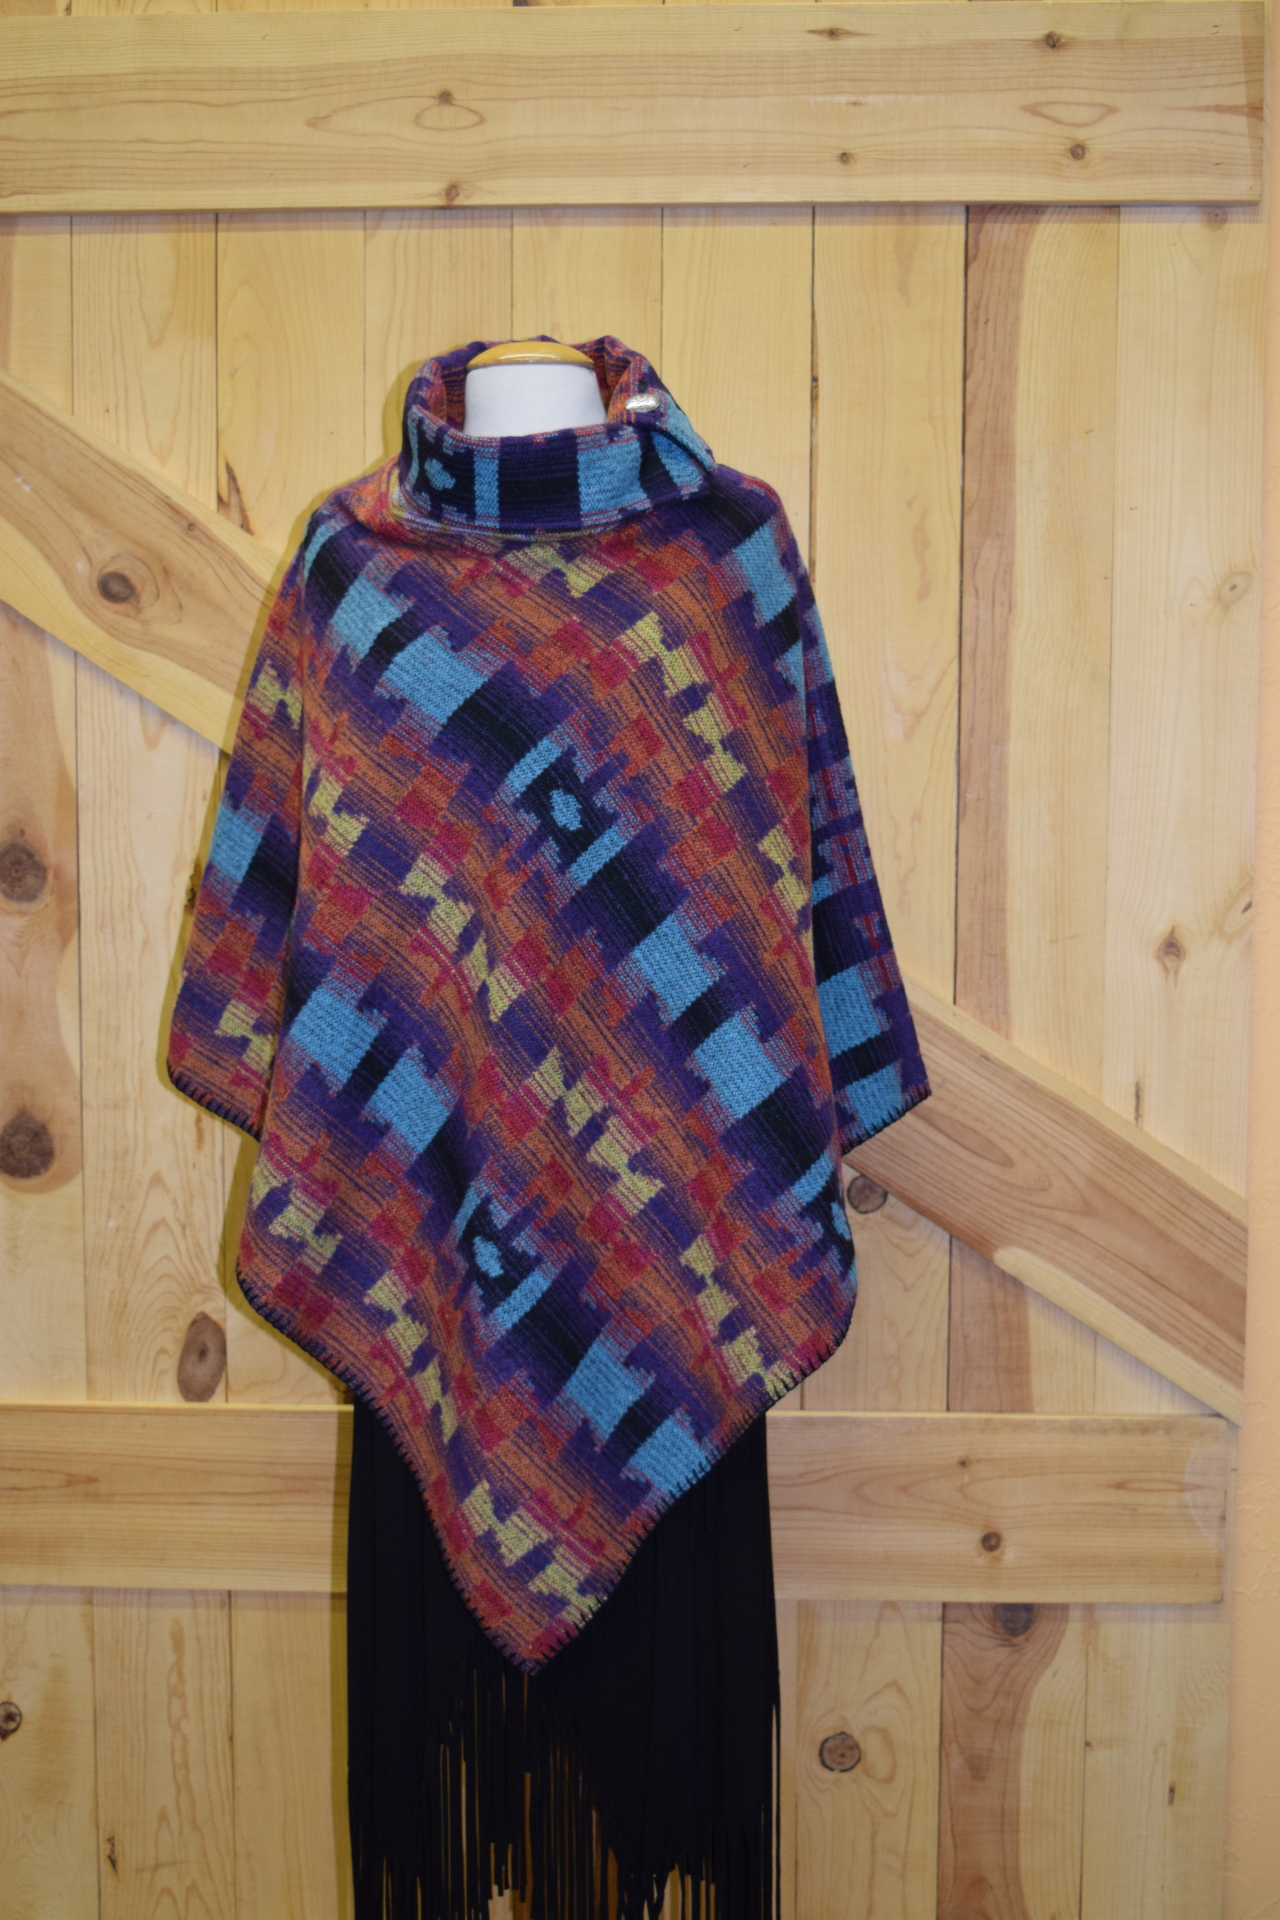 #208ASST. COL. 02 - JEWEL BIG SKY BUTTON COLLAR PONCHO - O/S -- WAS $129.95 -- SALE $99.95